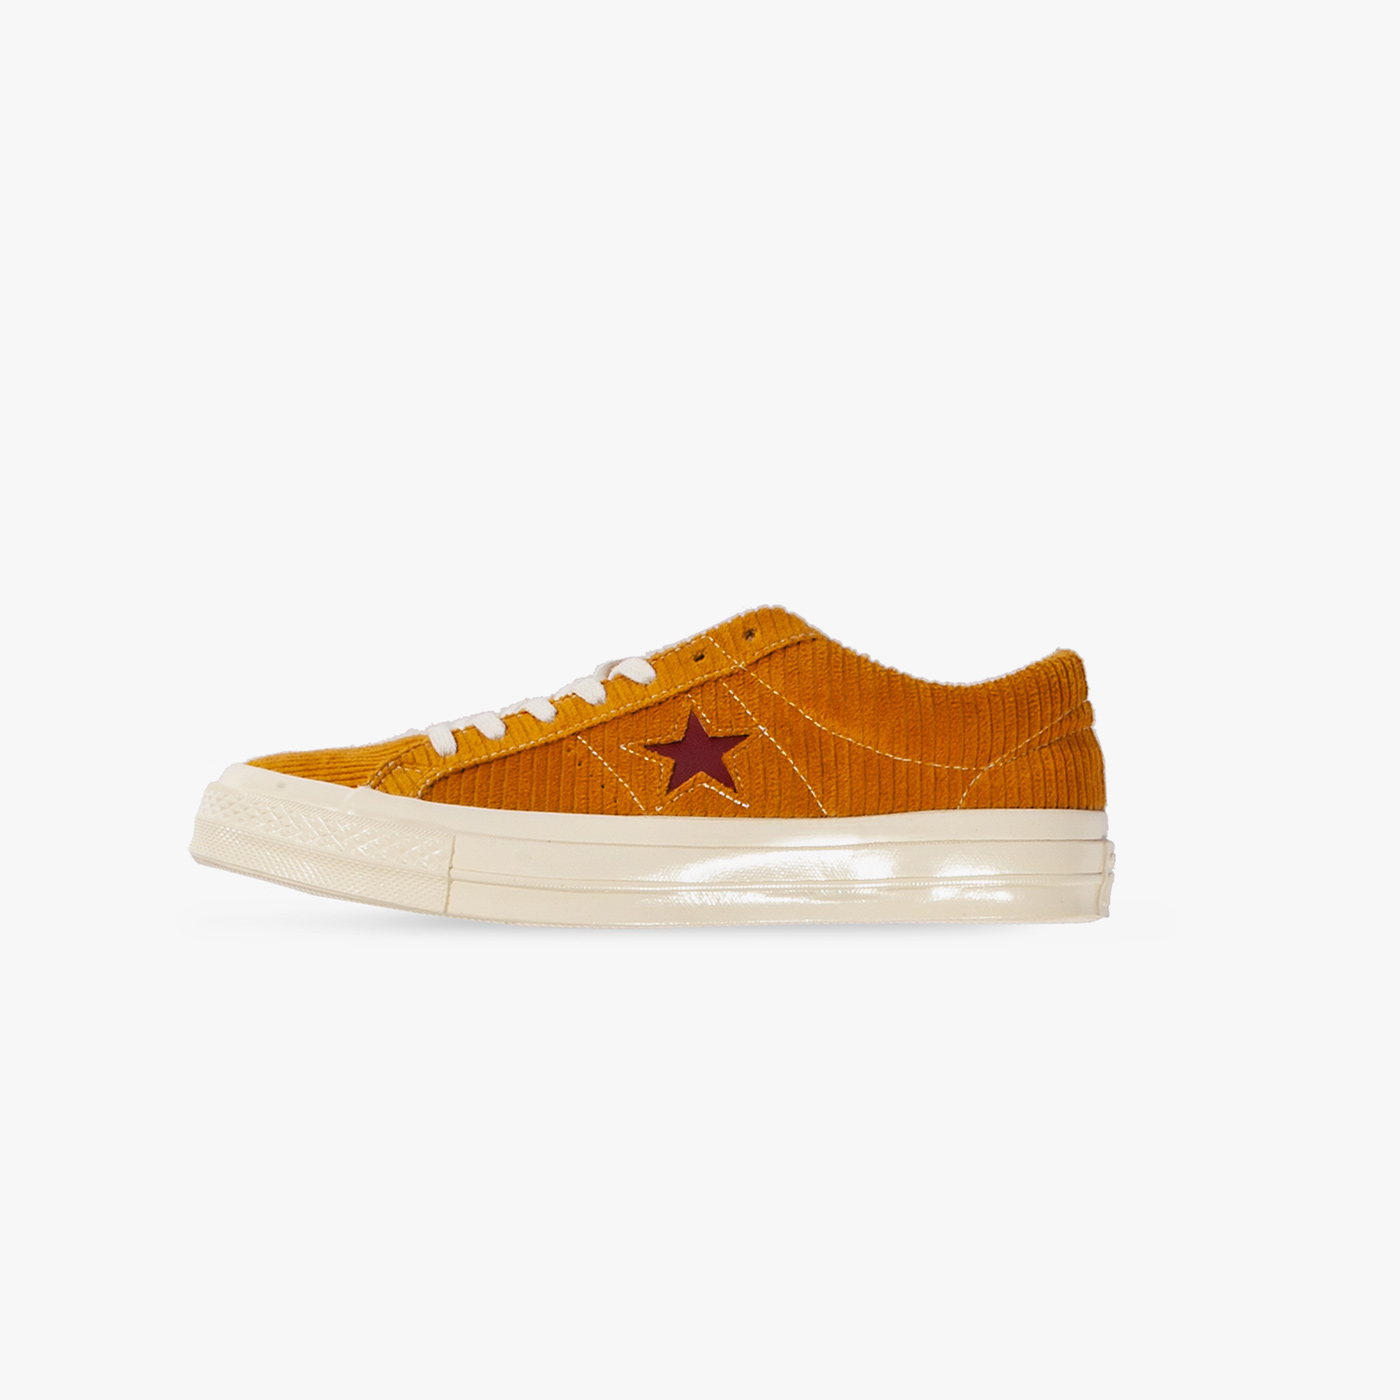 ASAP Nast x Converse One Star OX Somewhere in Mid Century